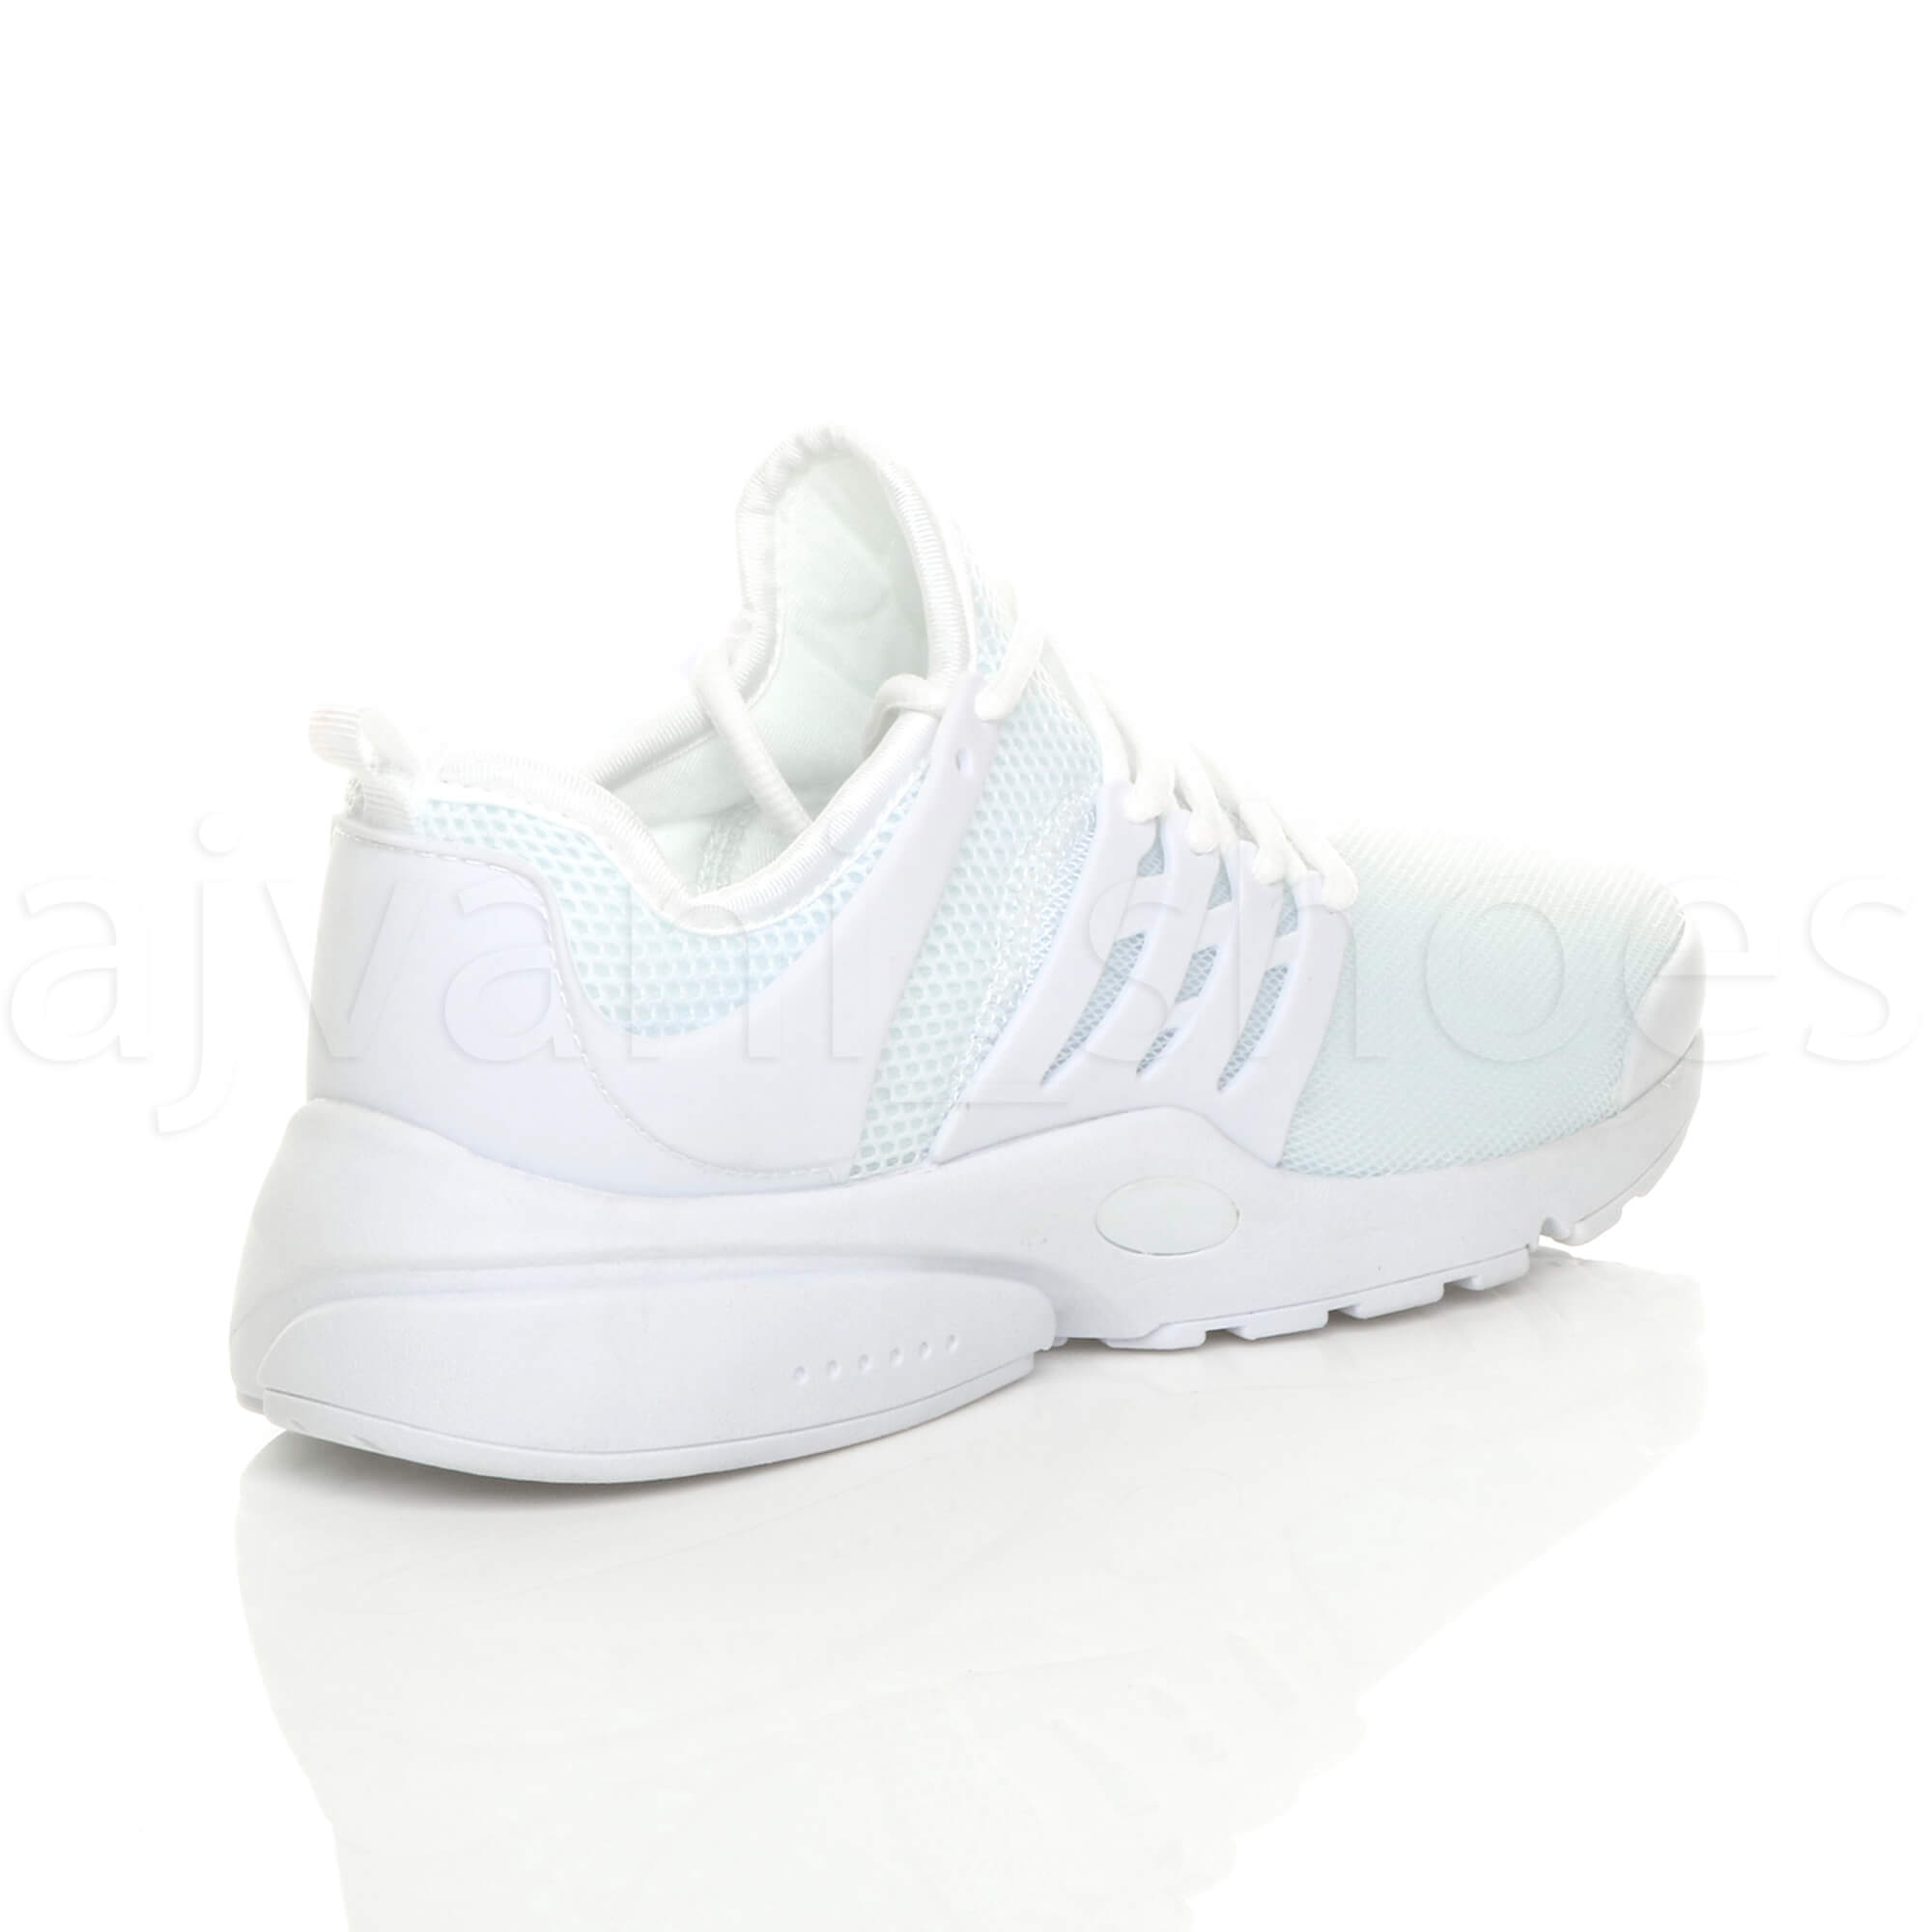 MENS-LACE-UP-SPORTS-GYM-FITNESS-RUNNING-FLEXIBLE-TRAINERS-CASUAL-SNEAKERS-SIZE thumbnail 45